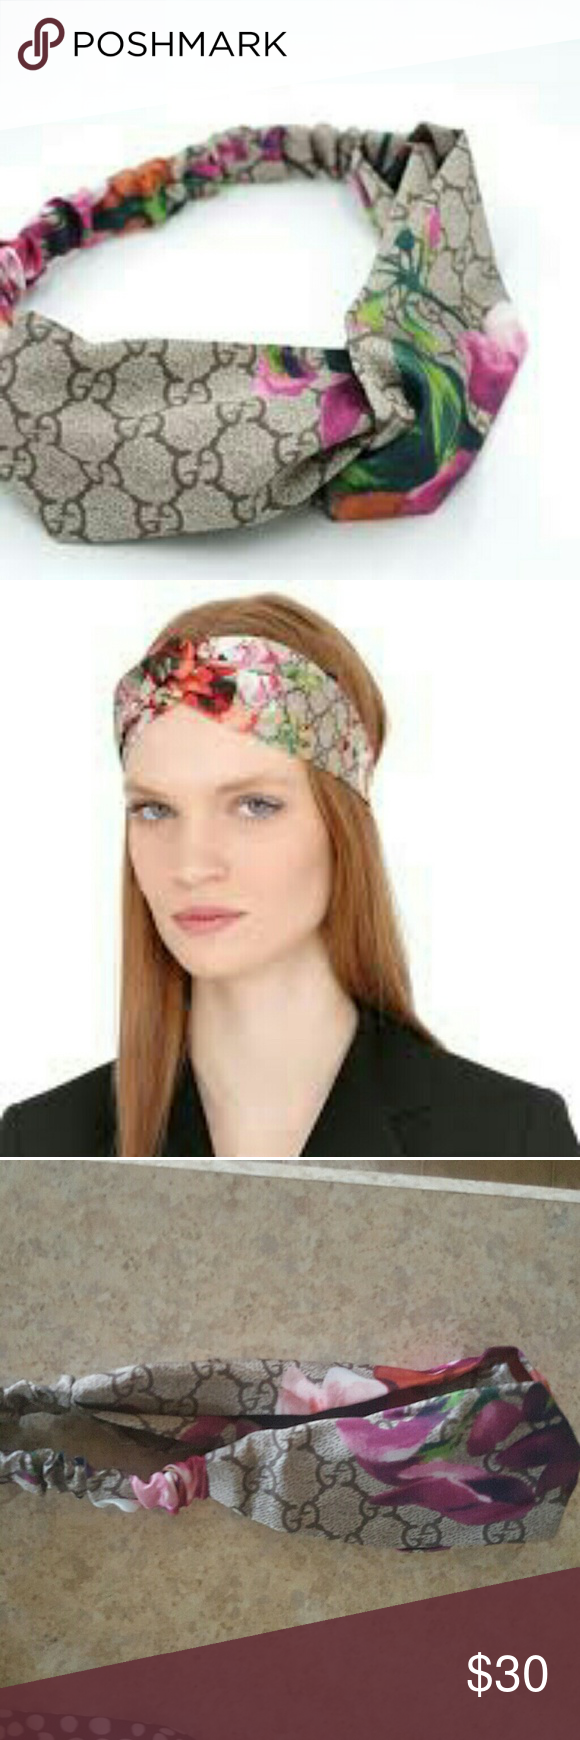 c5aa1402b65 Gucci Bloom Headband New in packaging. Accessories Hair Accessories ...